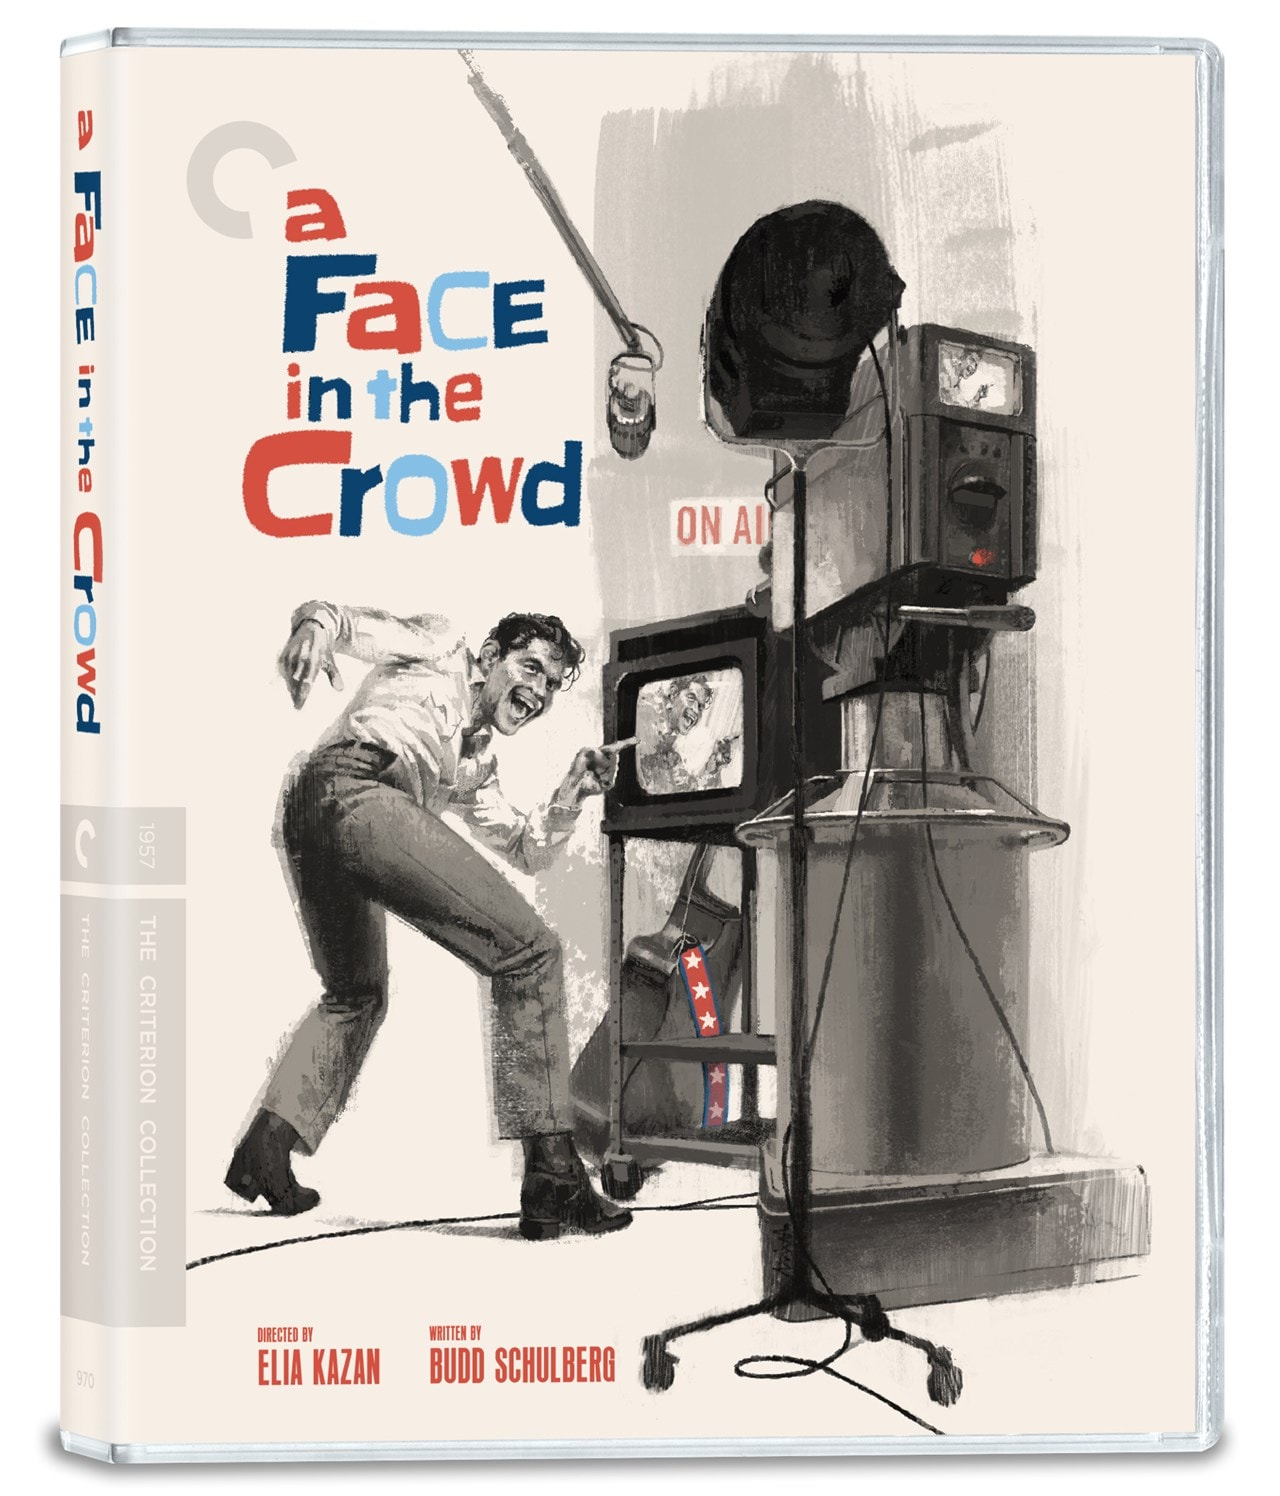 A Face in the Crowd - The Criterion Collection - 2